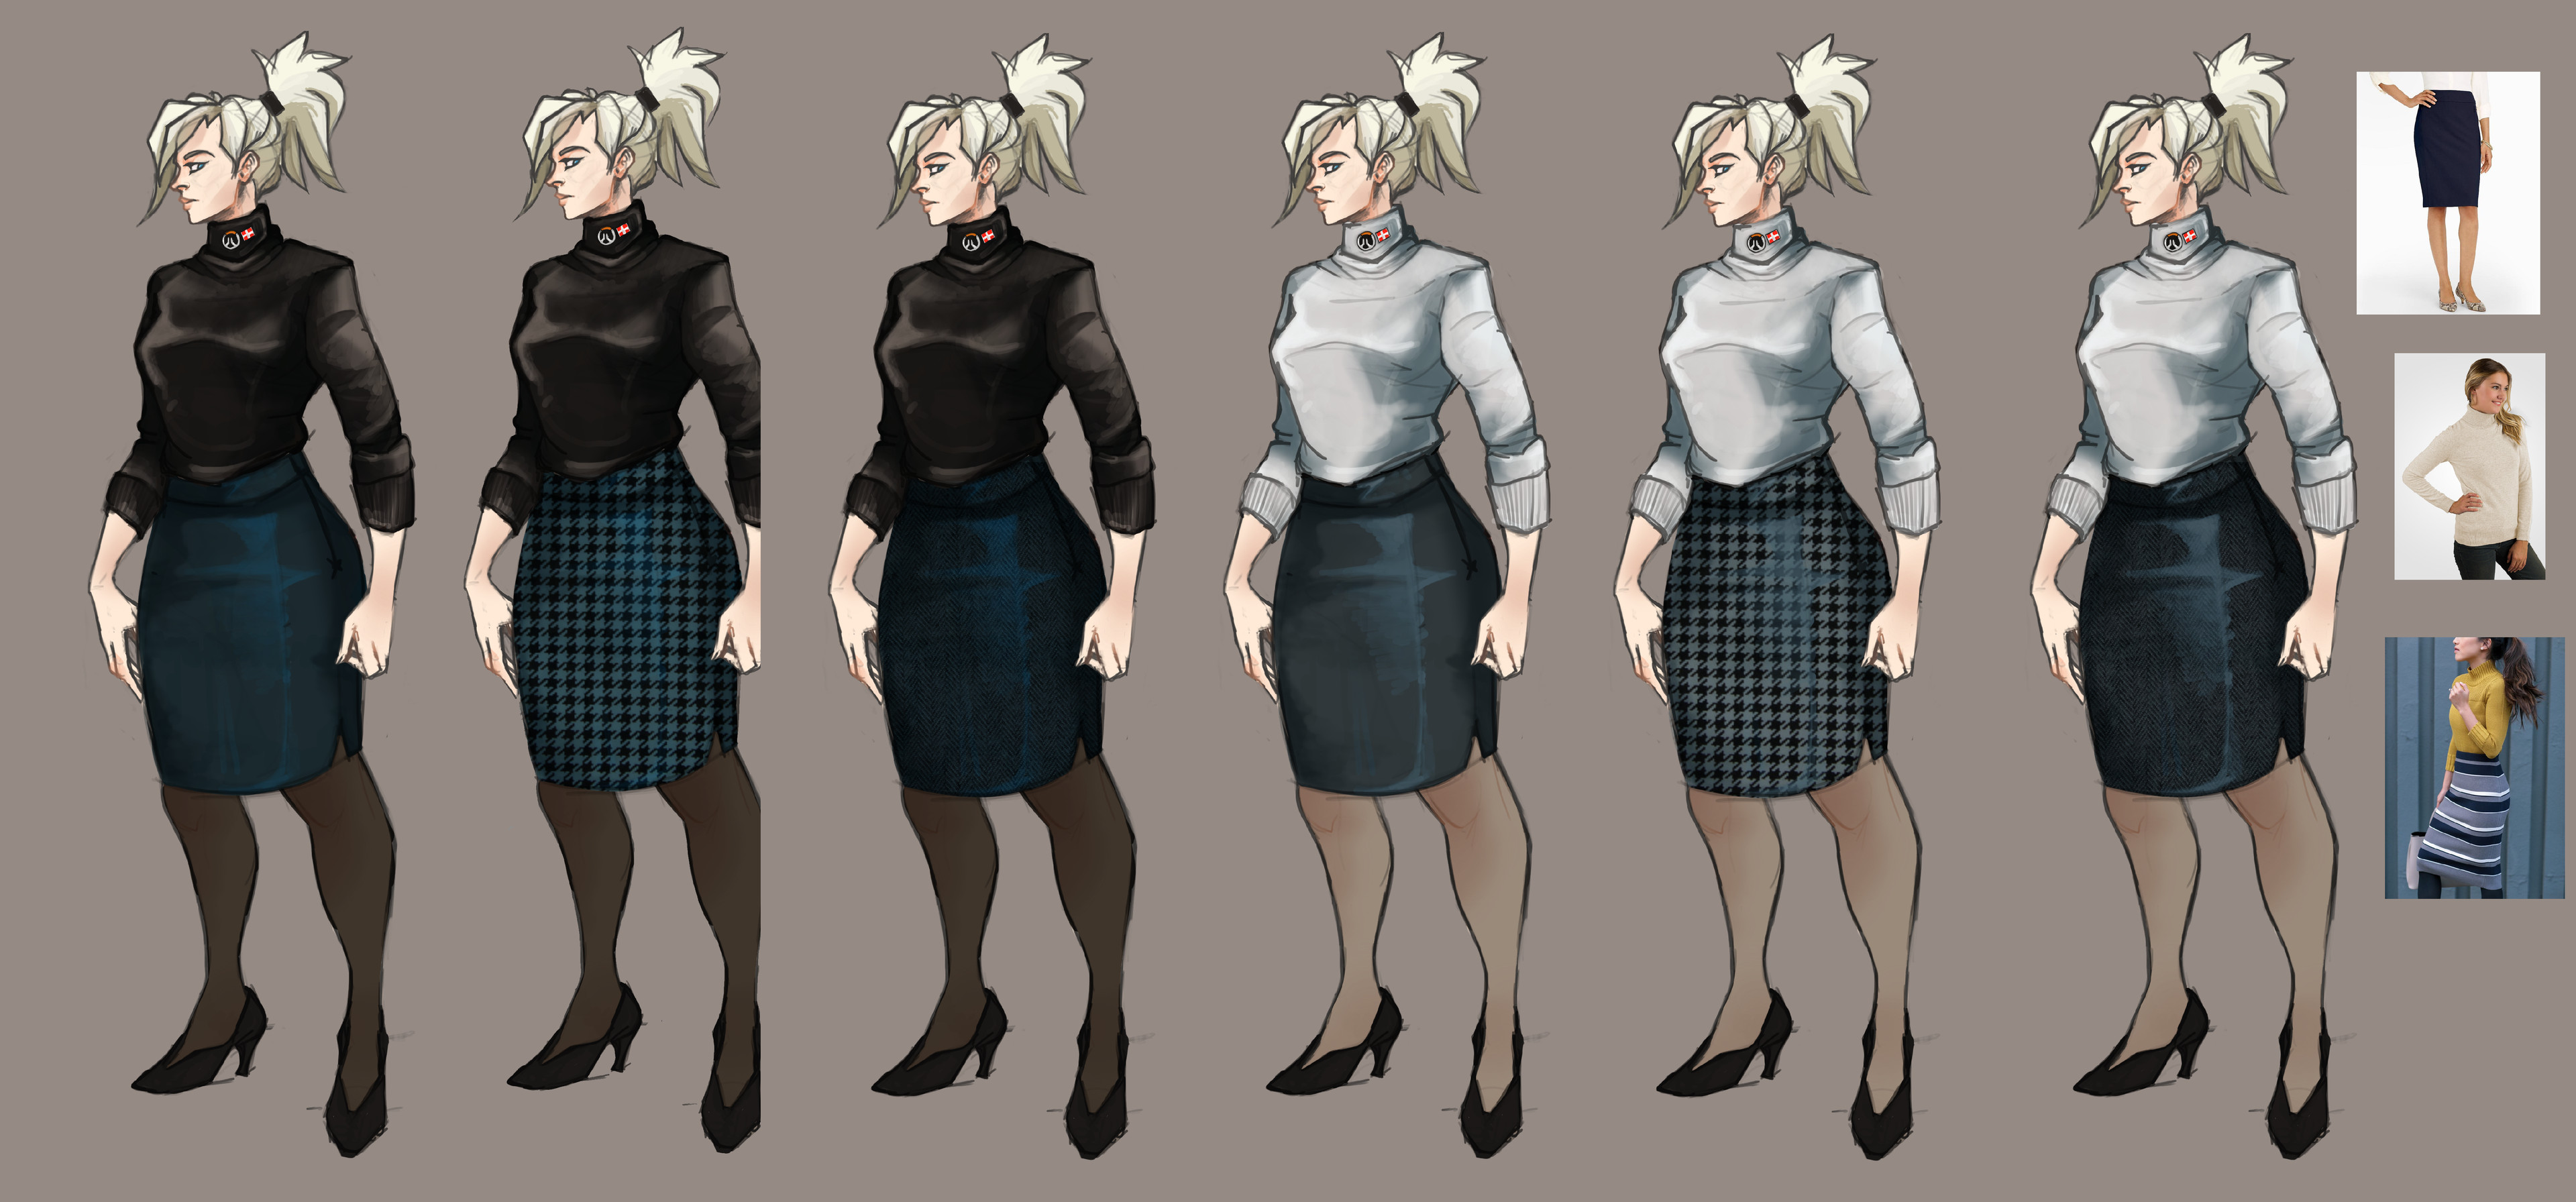 Ideations with research. I played with different textures, such as herringbone and houndstooth in her skirt.